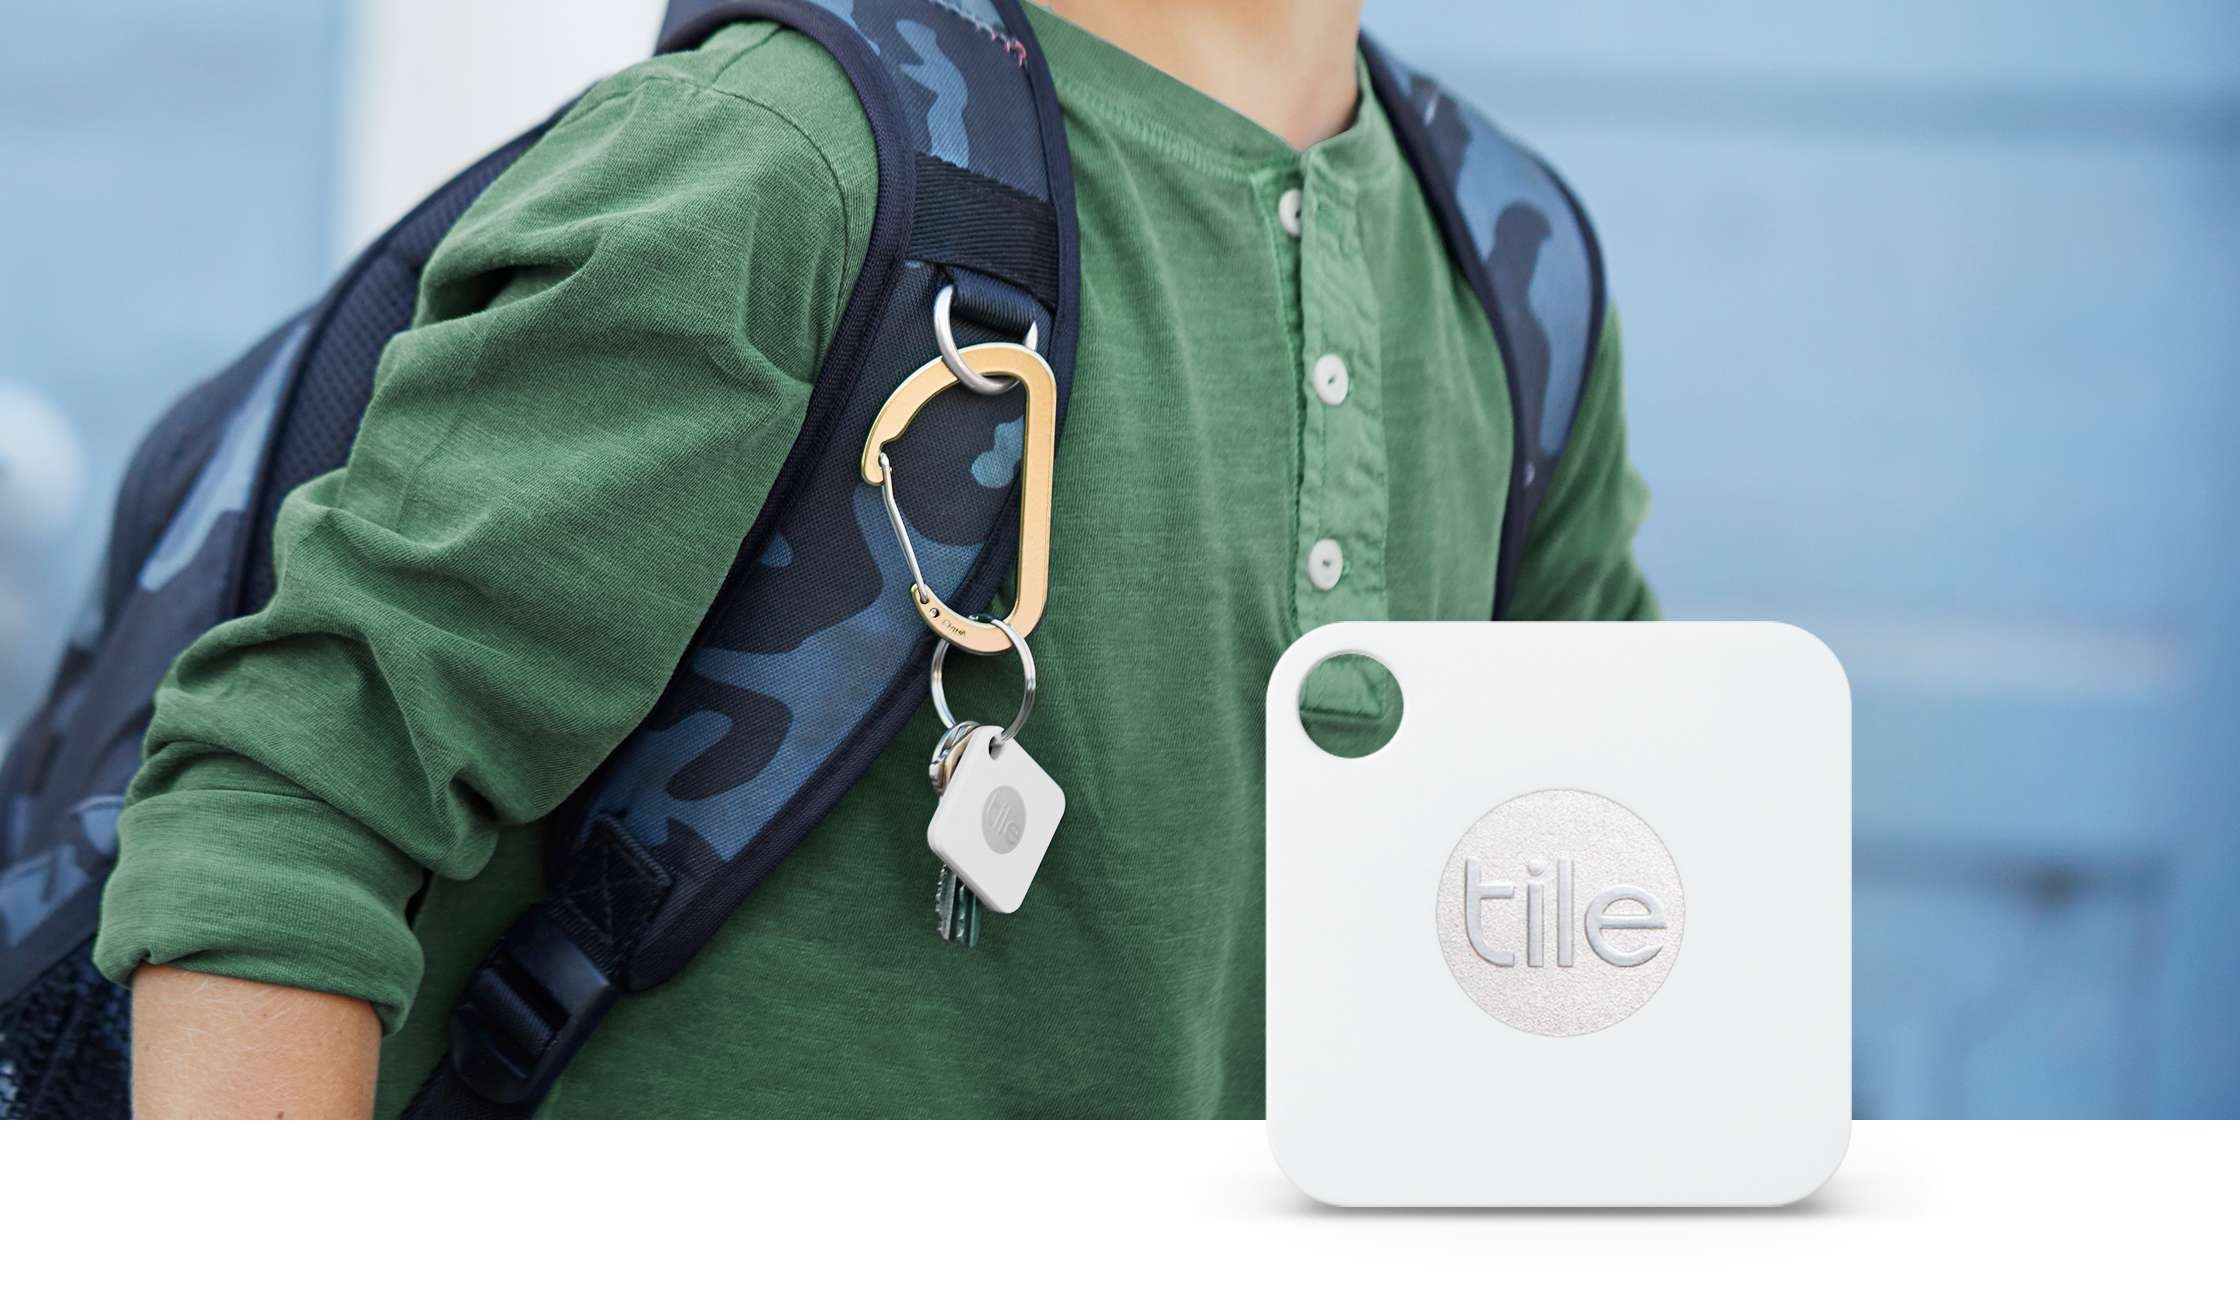 Tiles Bluetooth Tracking Devices Can Find Just About Anything